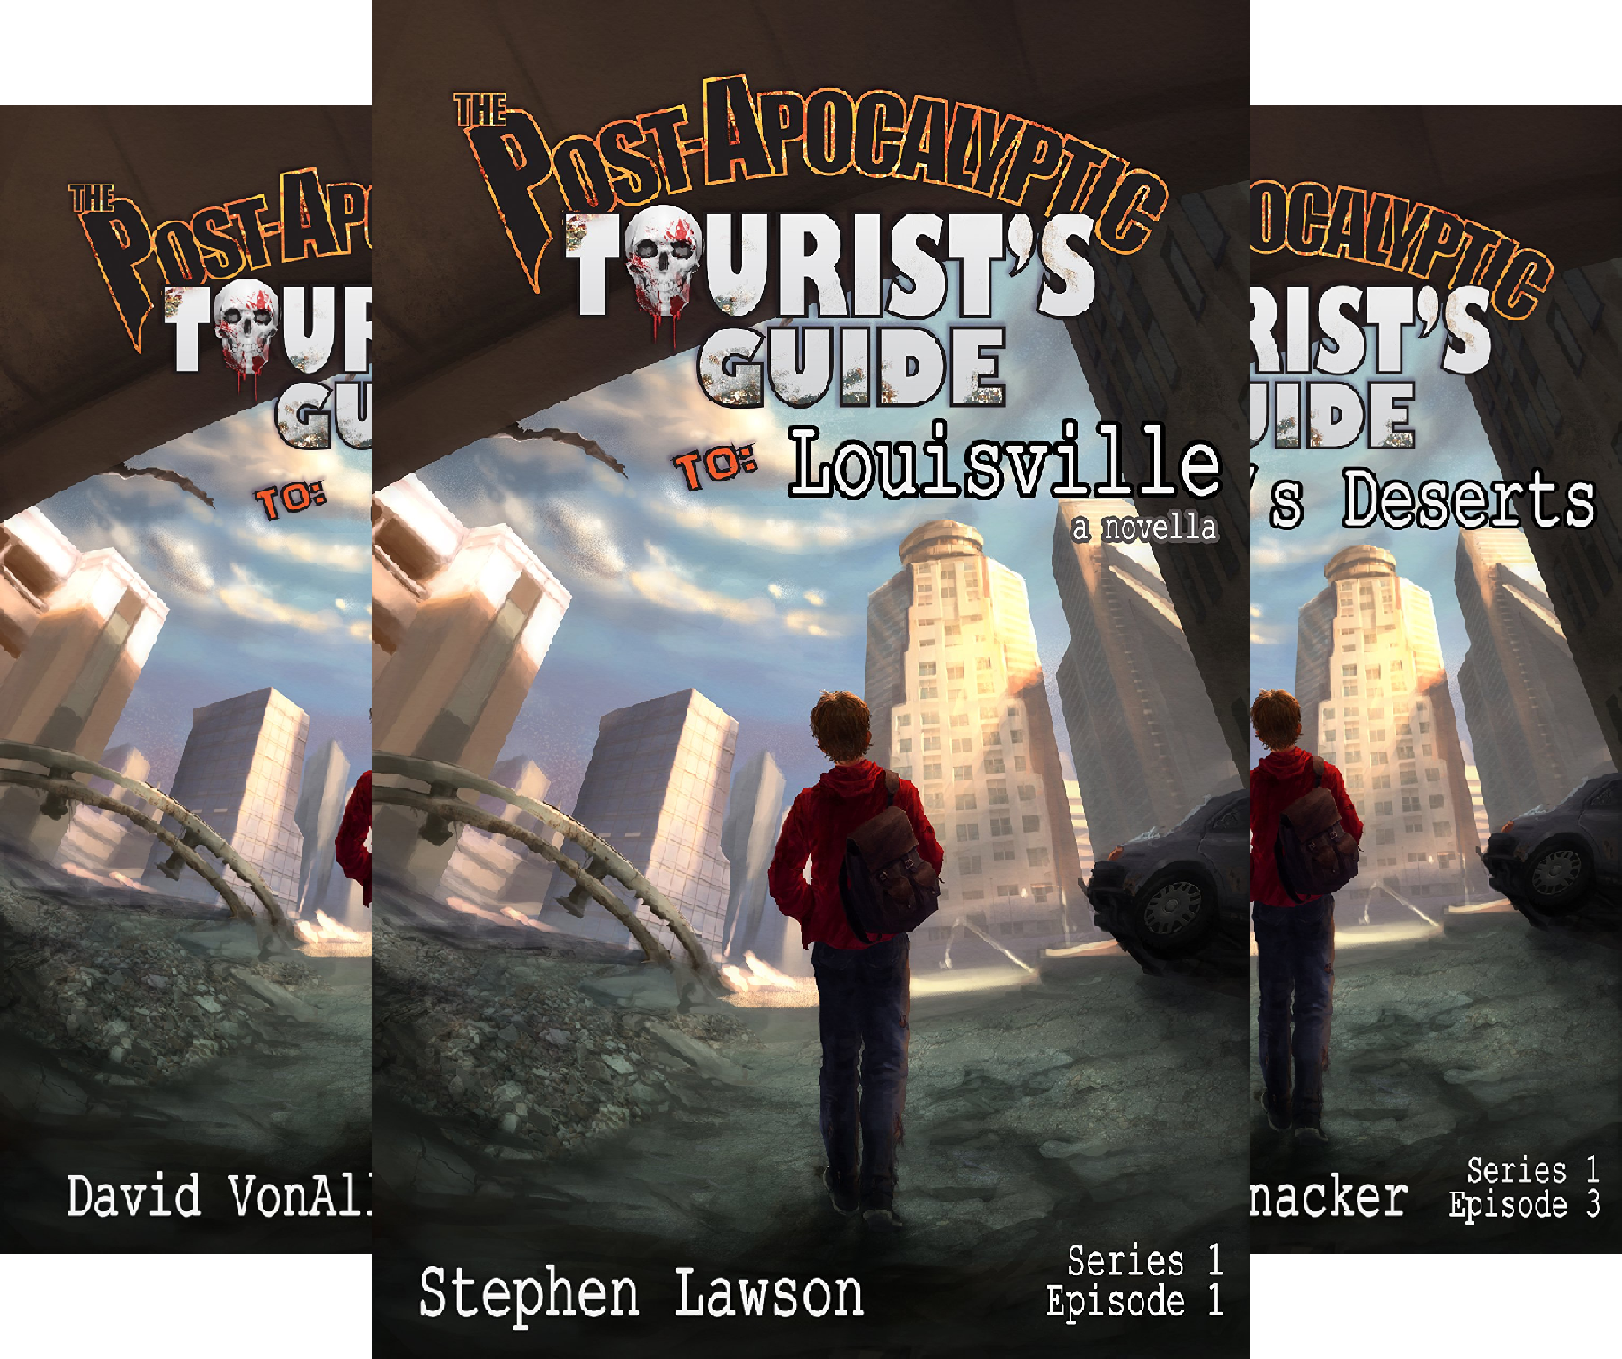 The Post-Apocalyptic Tourist's Guide (6 Book Series)